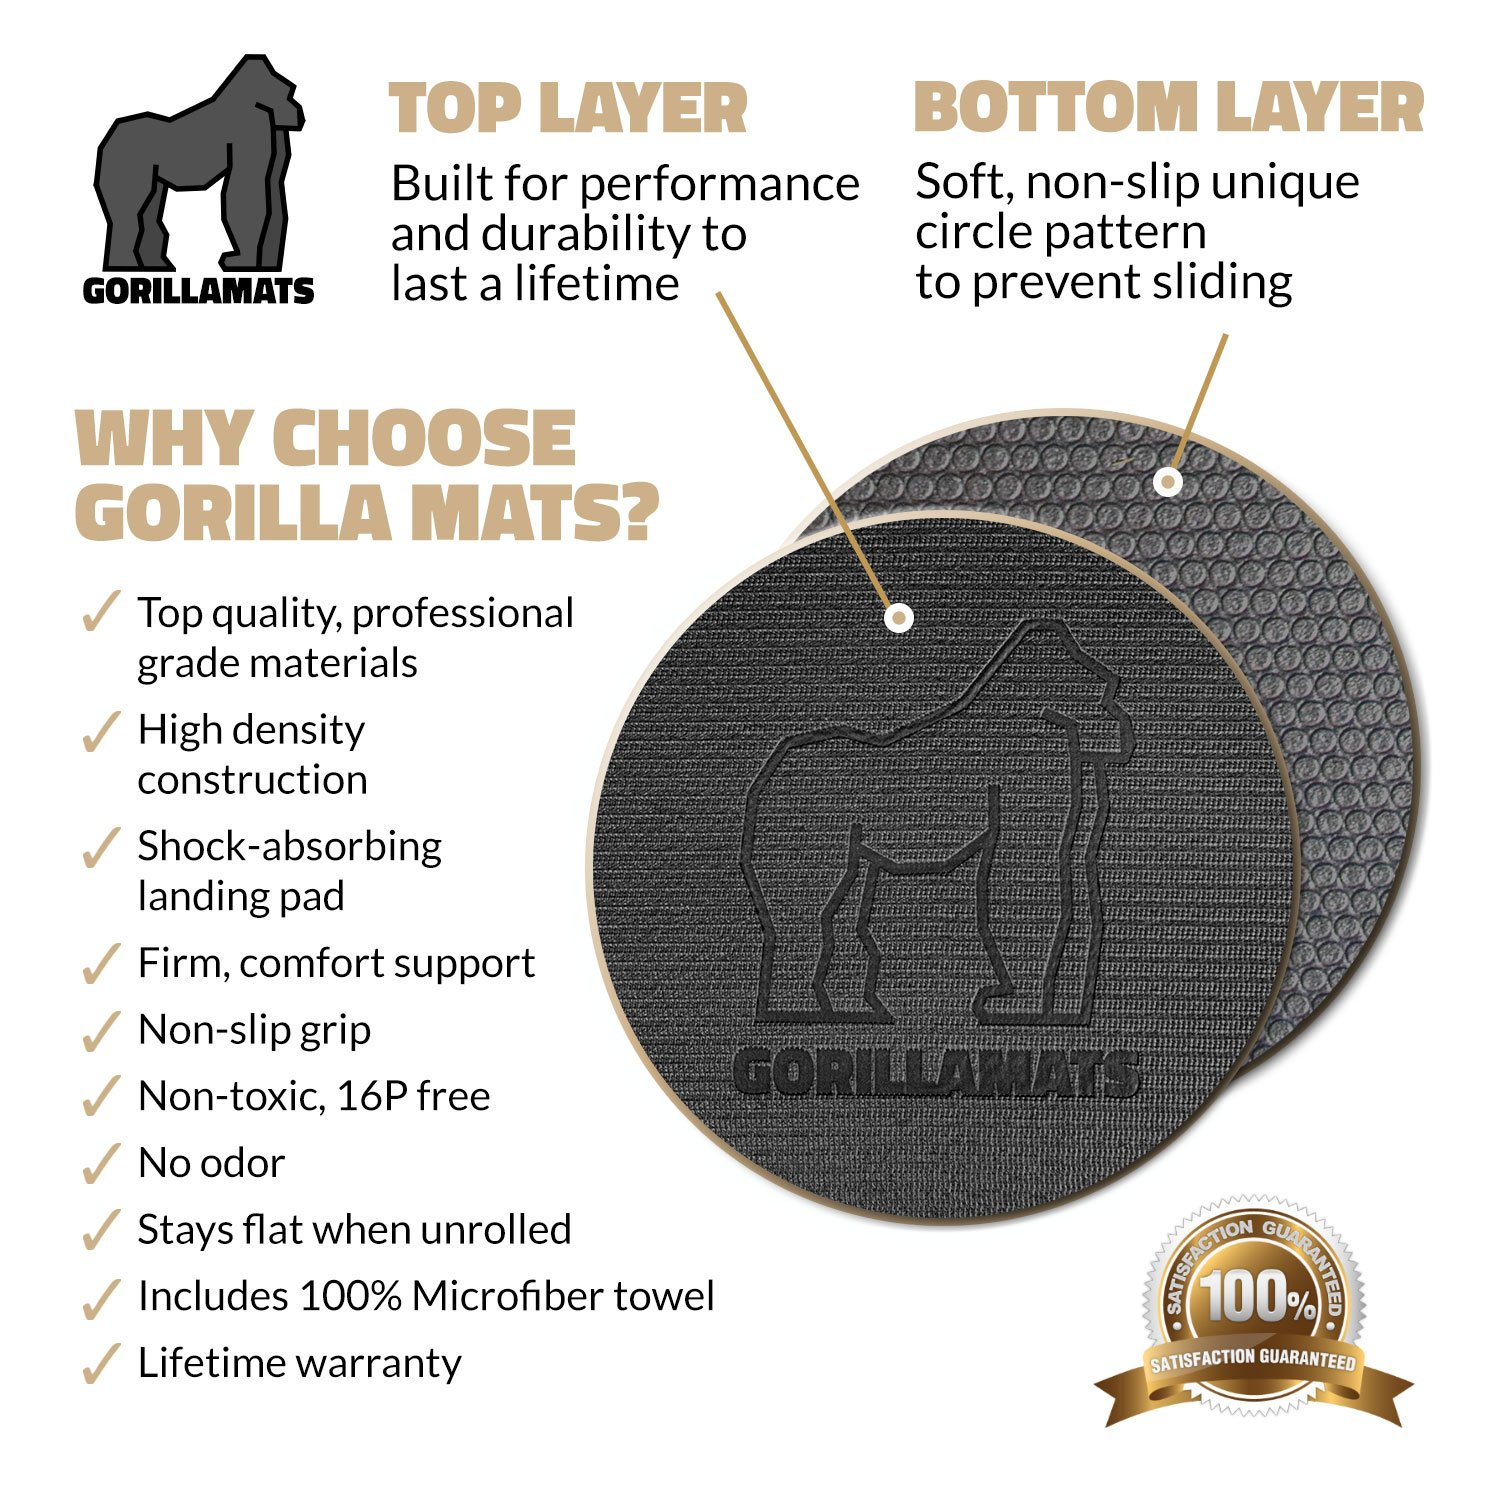 Premium Extra Large Exercise Mat - 8' x 4' x 1/4'' Ultra Durable, Non-Slip, Workout Mats for Home Gym Flooring - Jump, Cardio, MMA Mat - Use with or Without Shoes (96'' Long x 48'' Wide x 6mm Thick) by Gorilla Mats (Image #2)